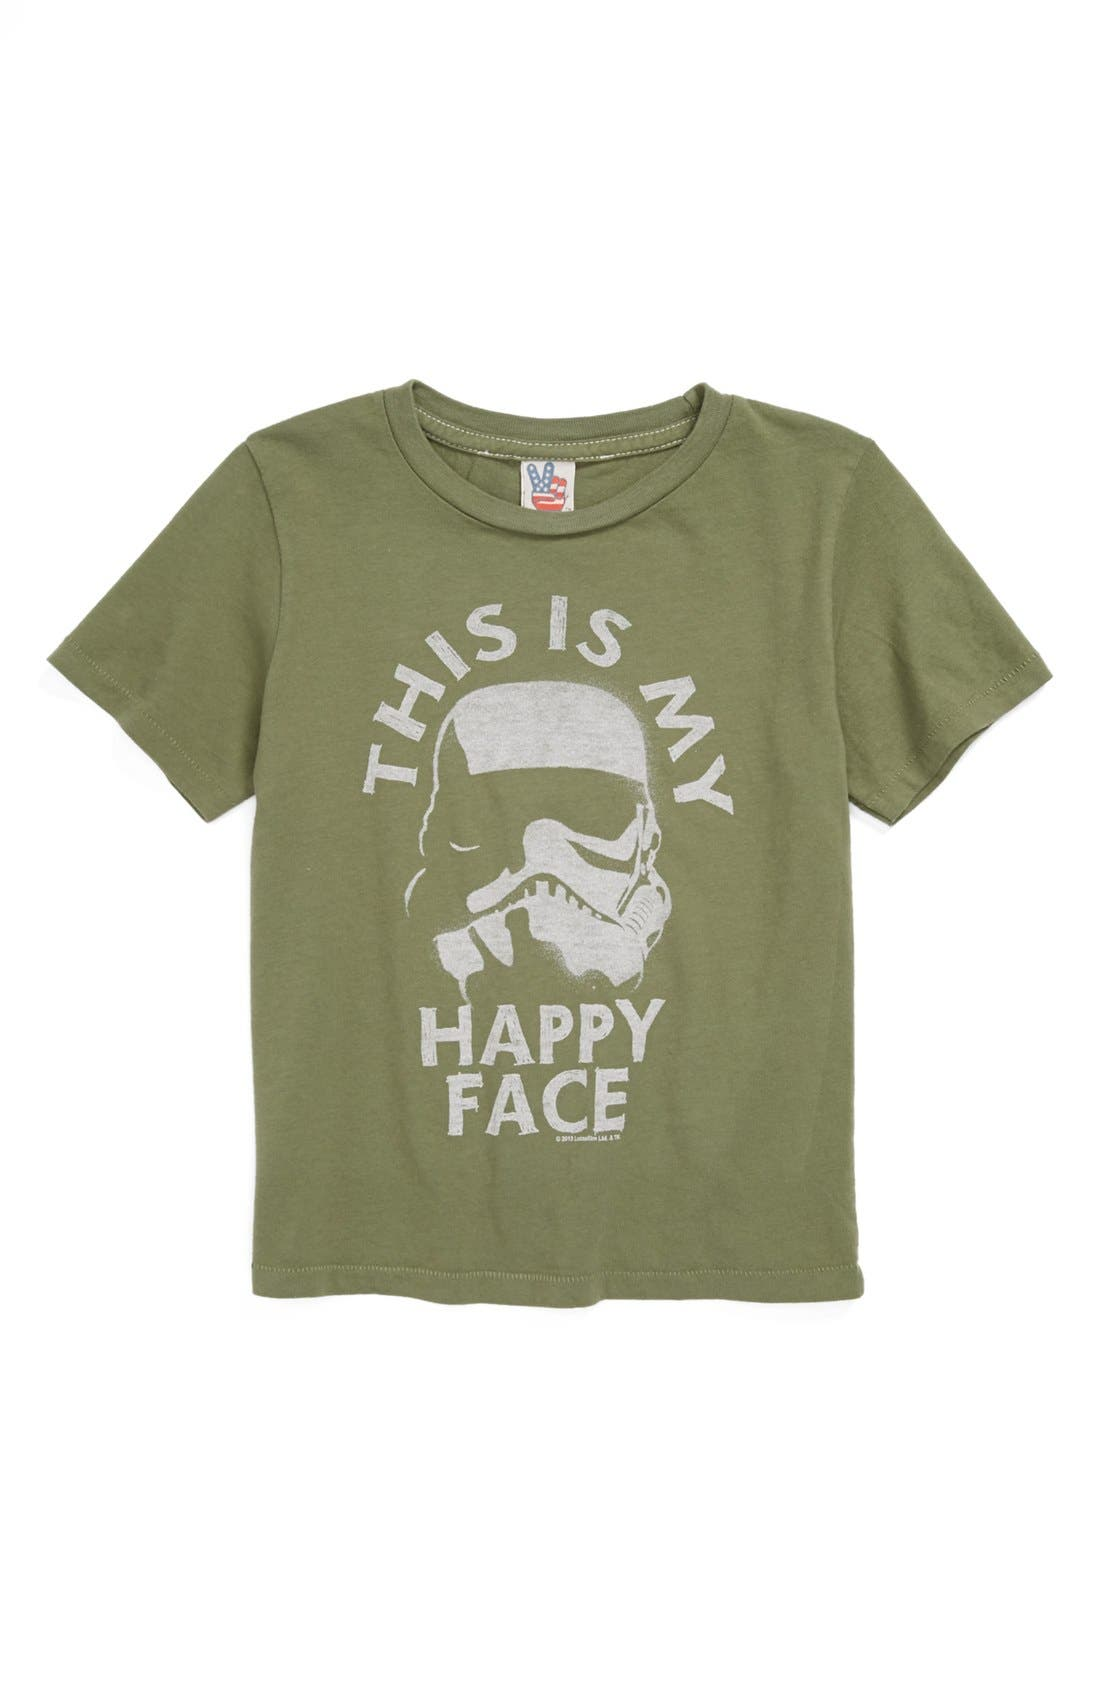 Main Image - Junk Food 'This Is My Happy Face' T-Shirt (Toddler Boys)